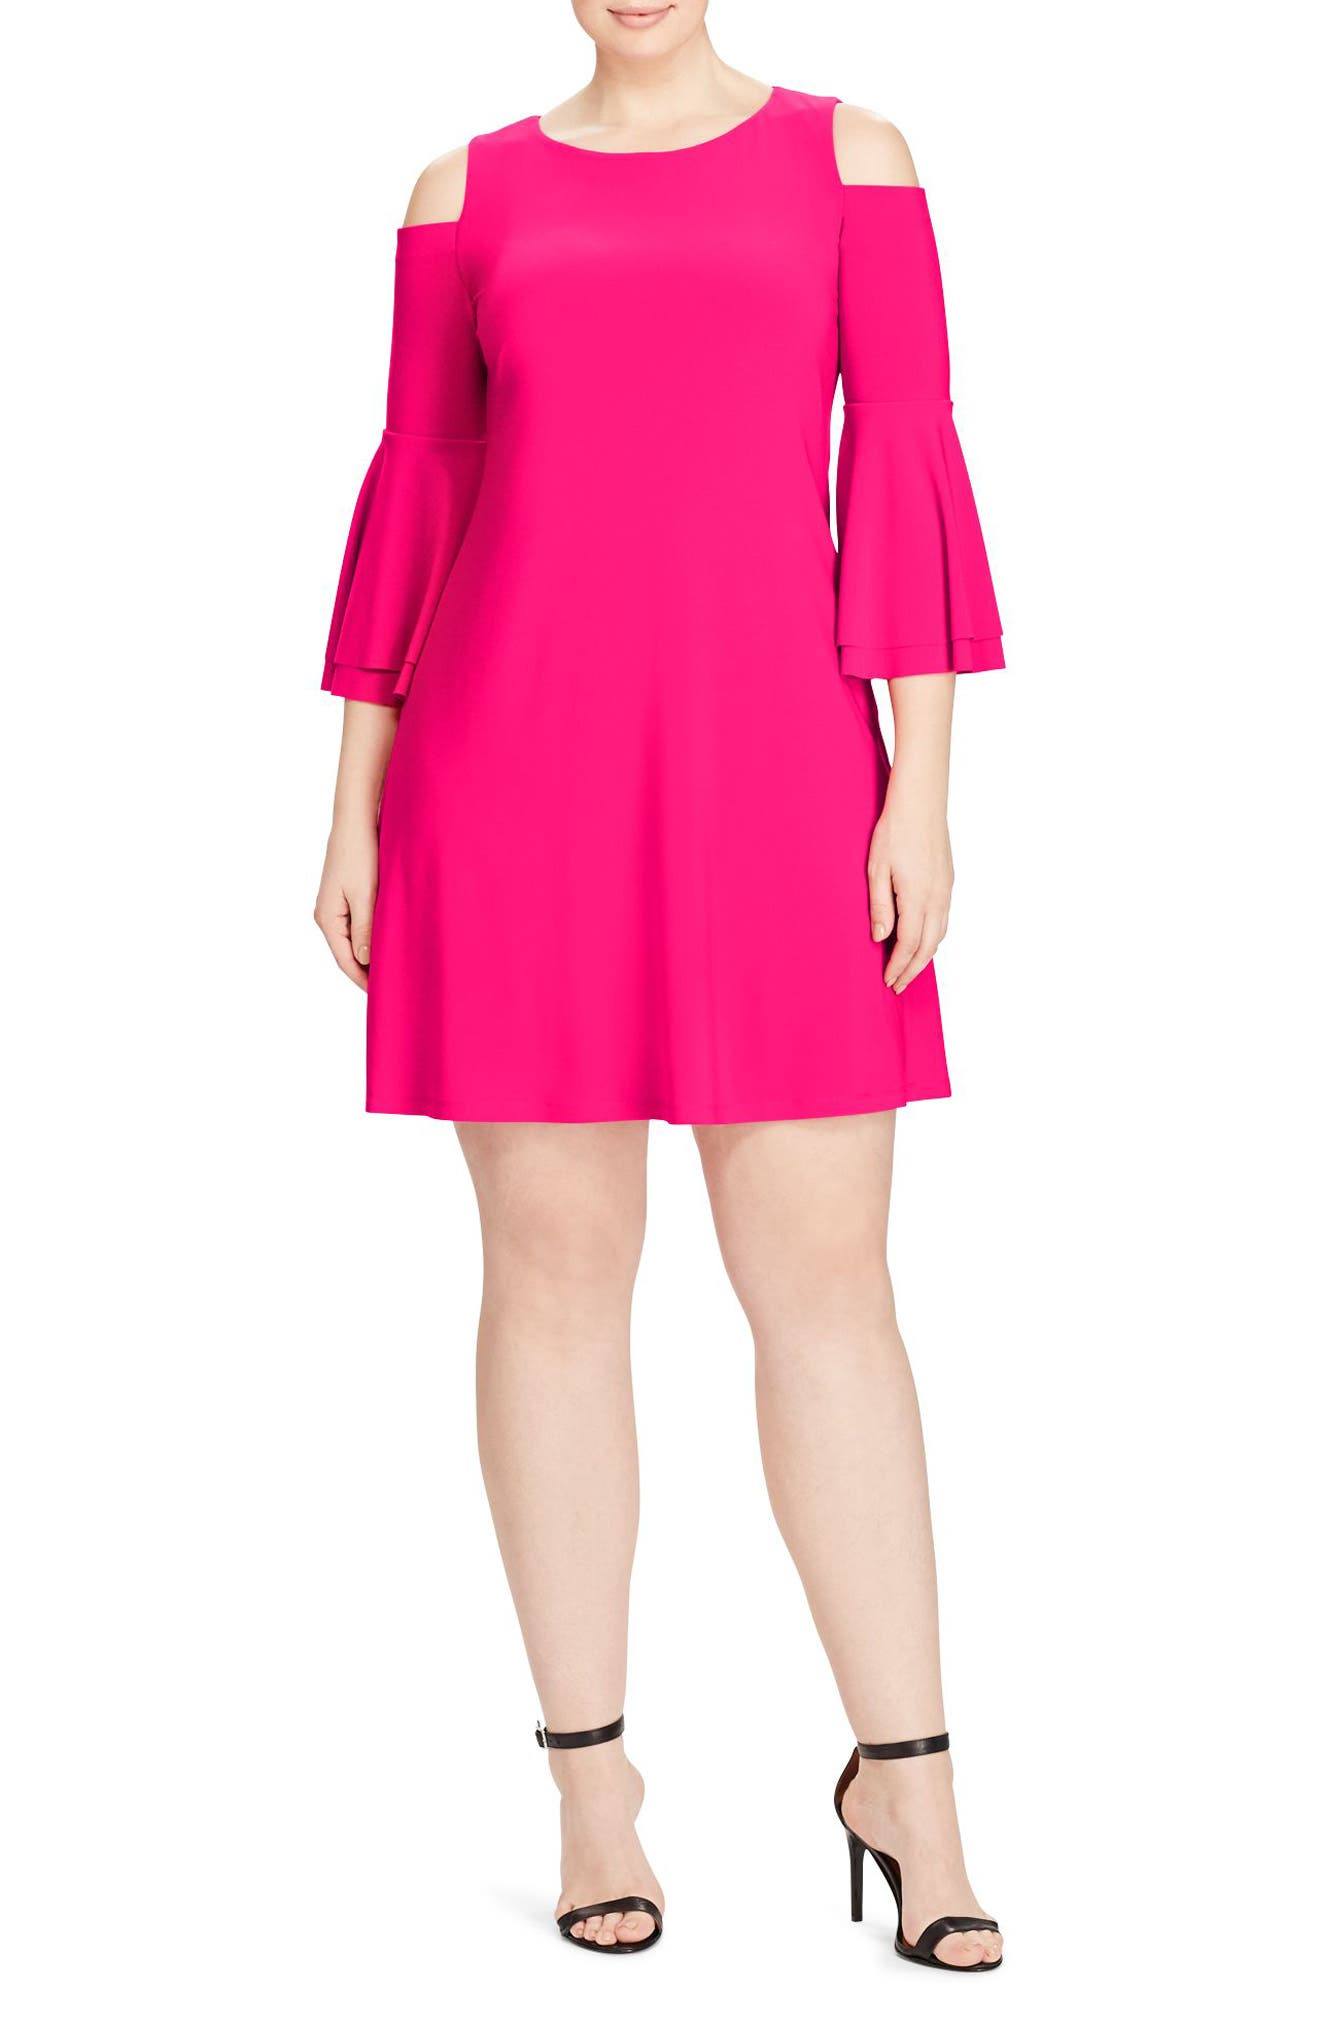 LAUREN RALPH LAUREN Cold Shoulder A-Line Dress